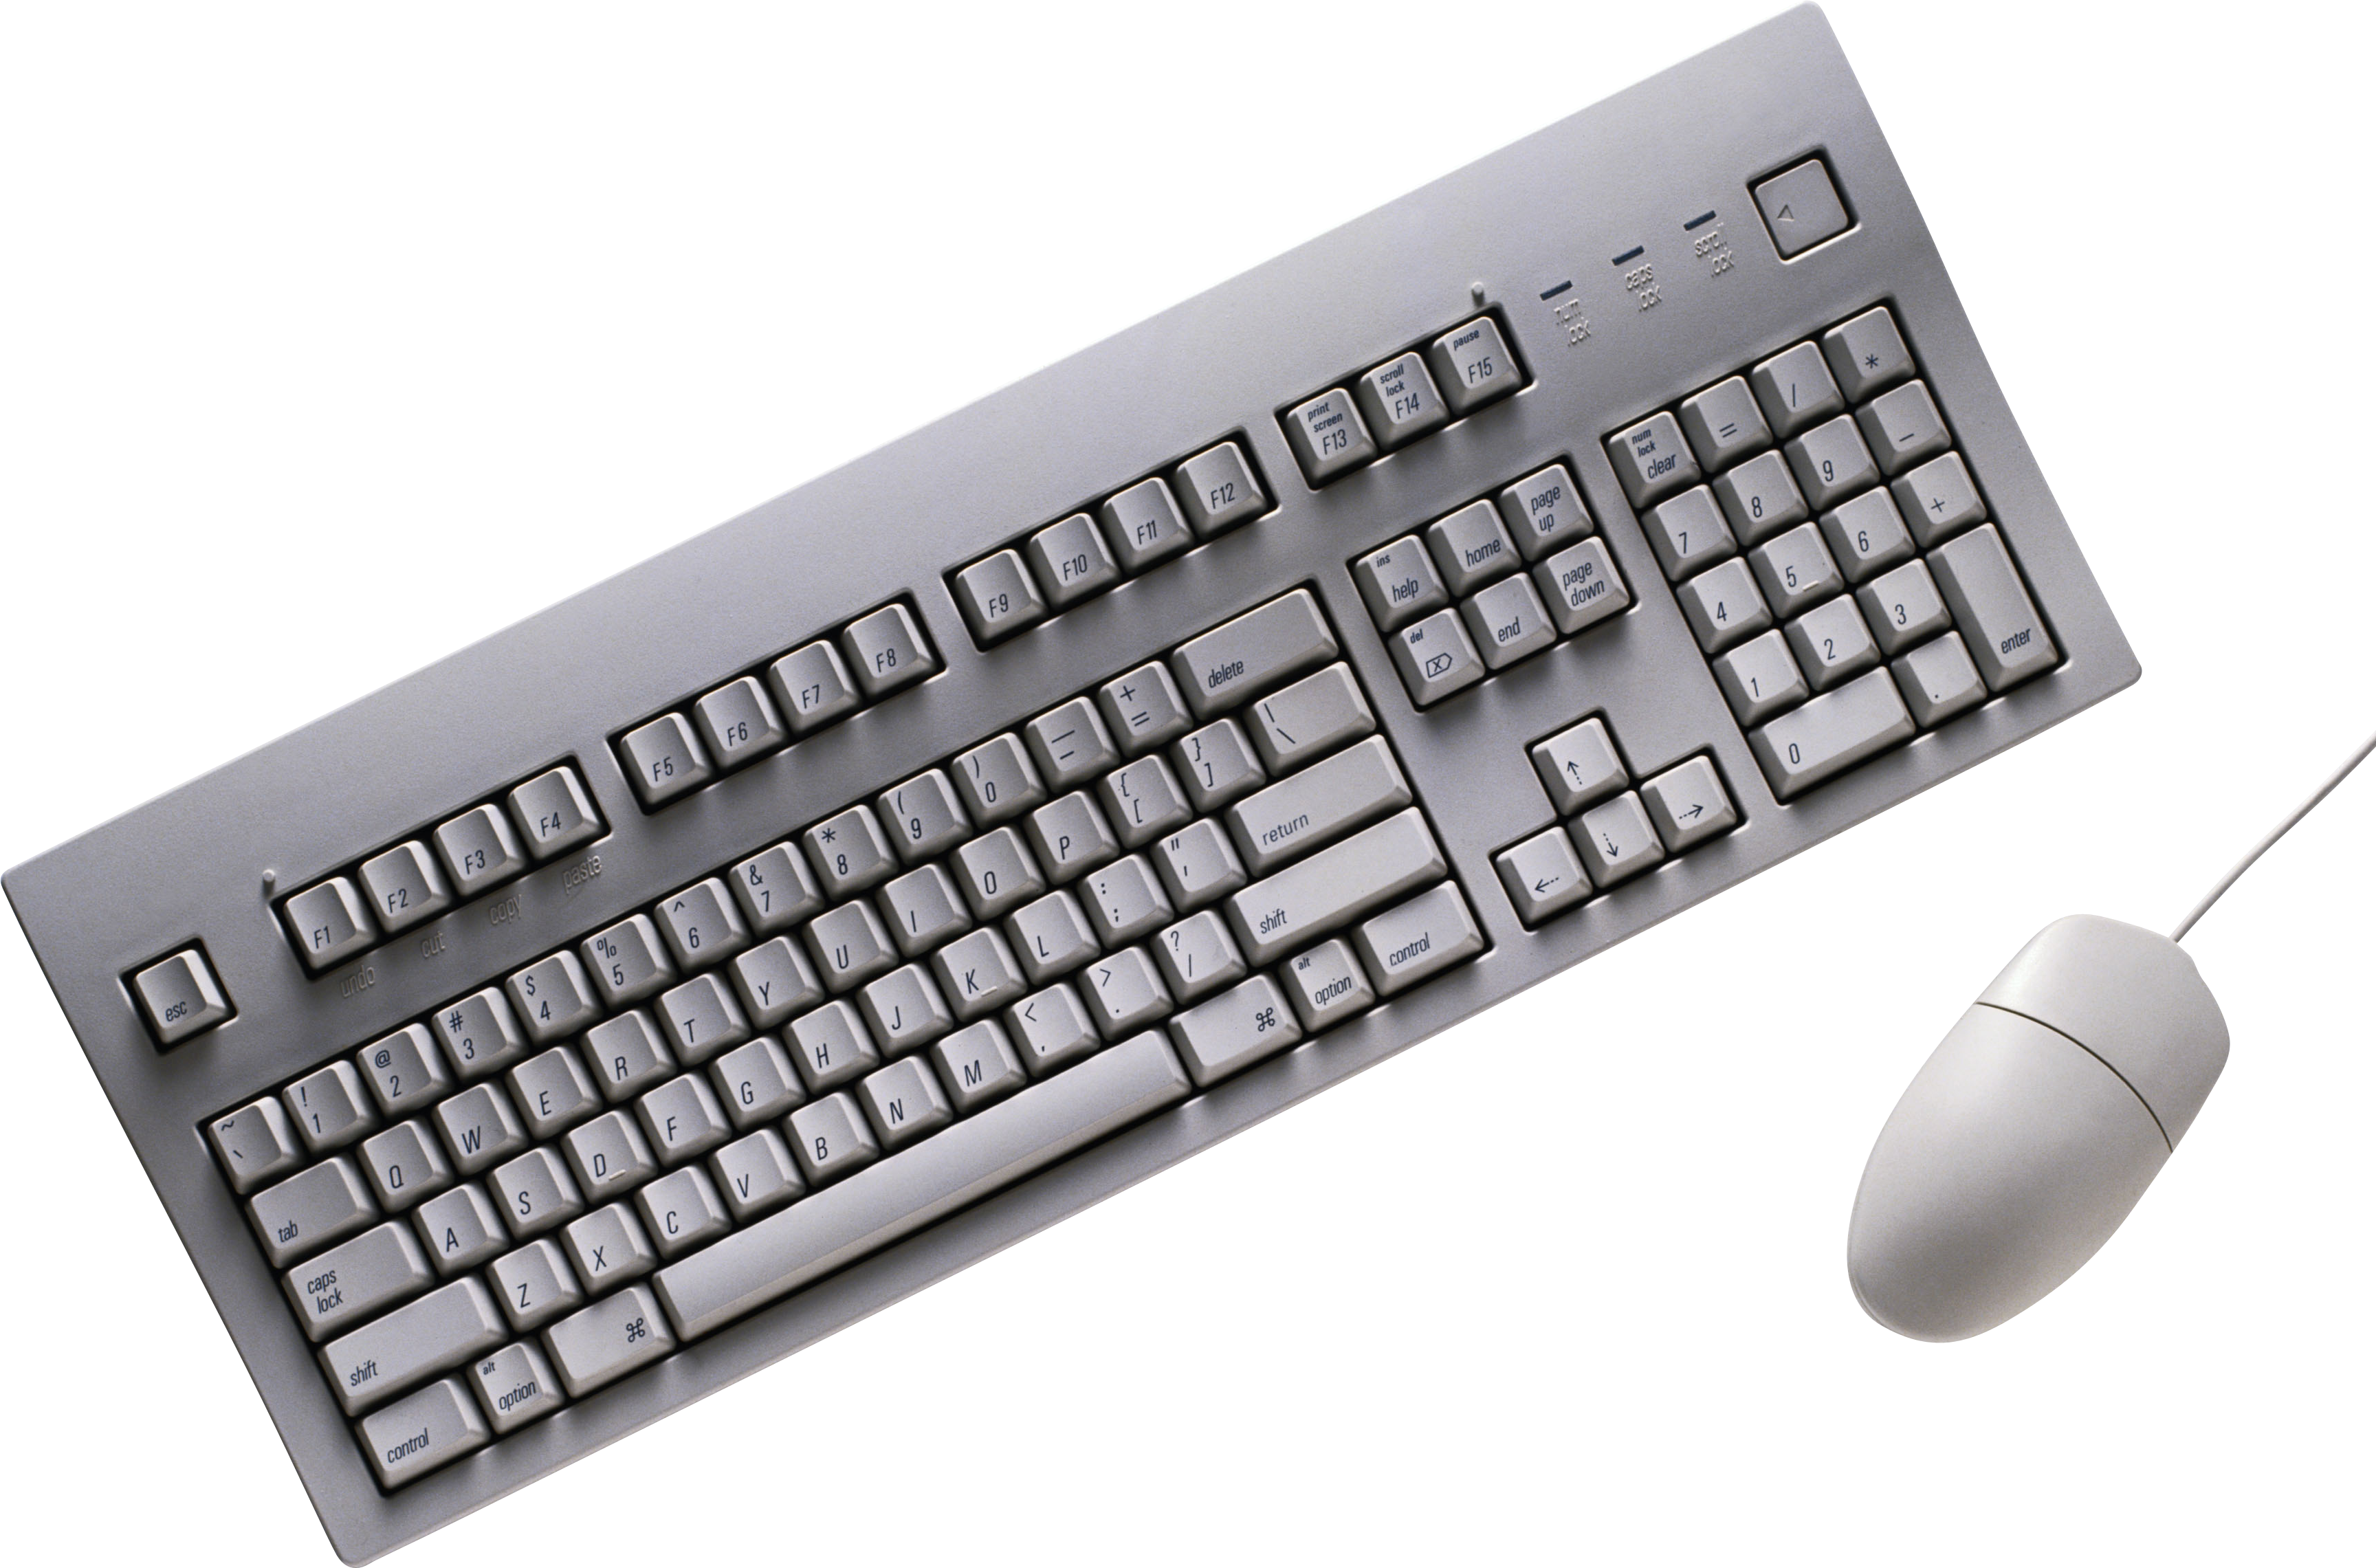 Pc png images free. Keyboard clipart modern computer